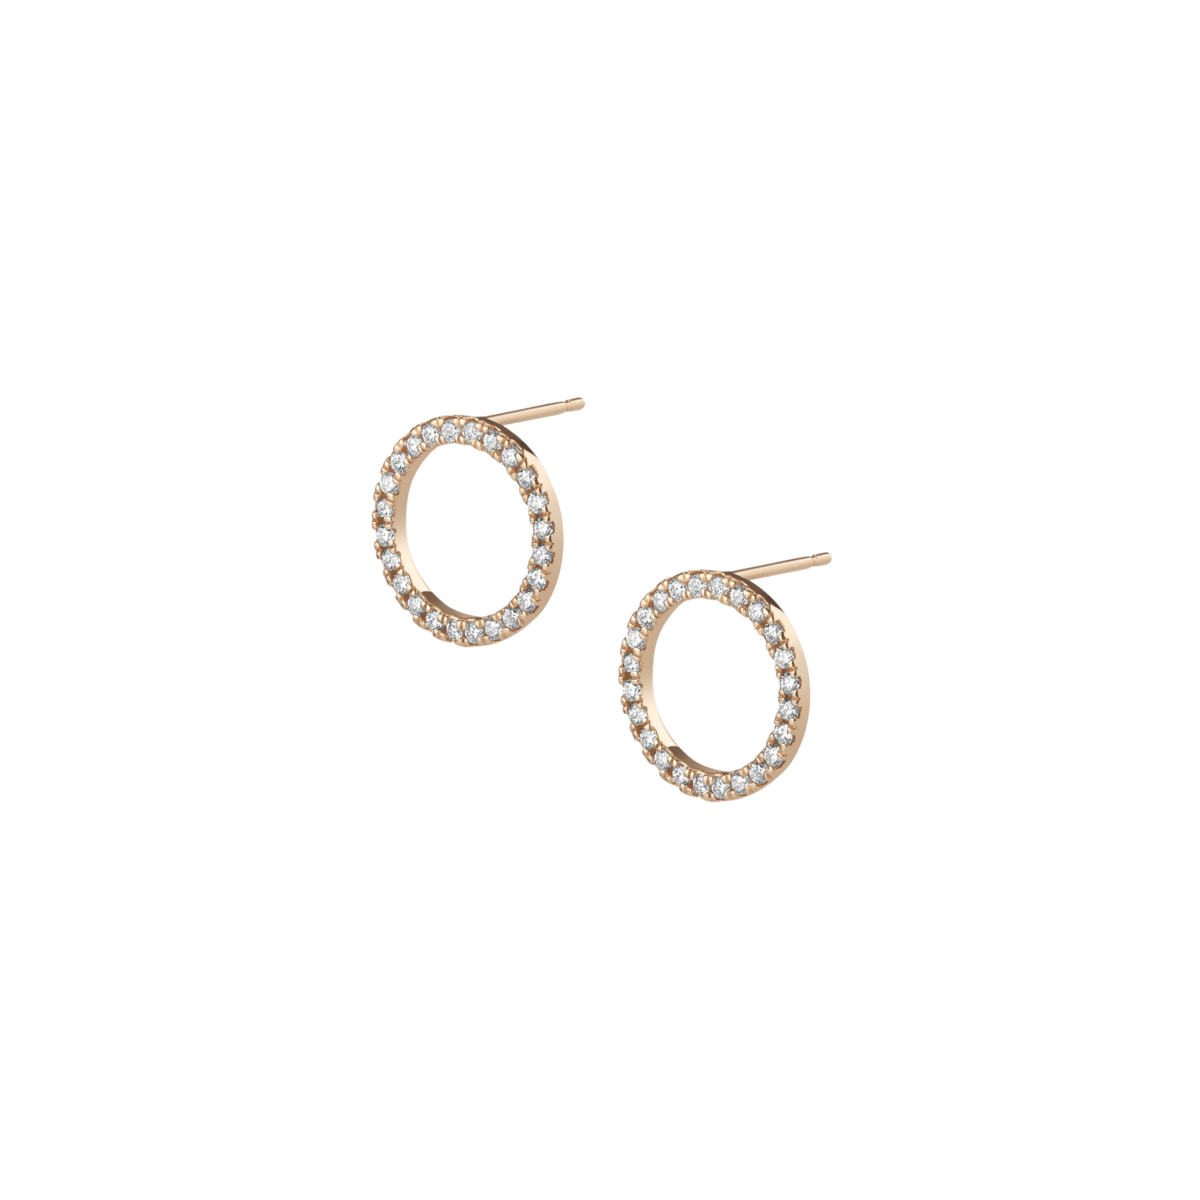 Earring transparent circle. Diamond earrings with white